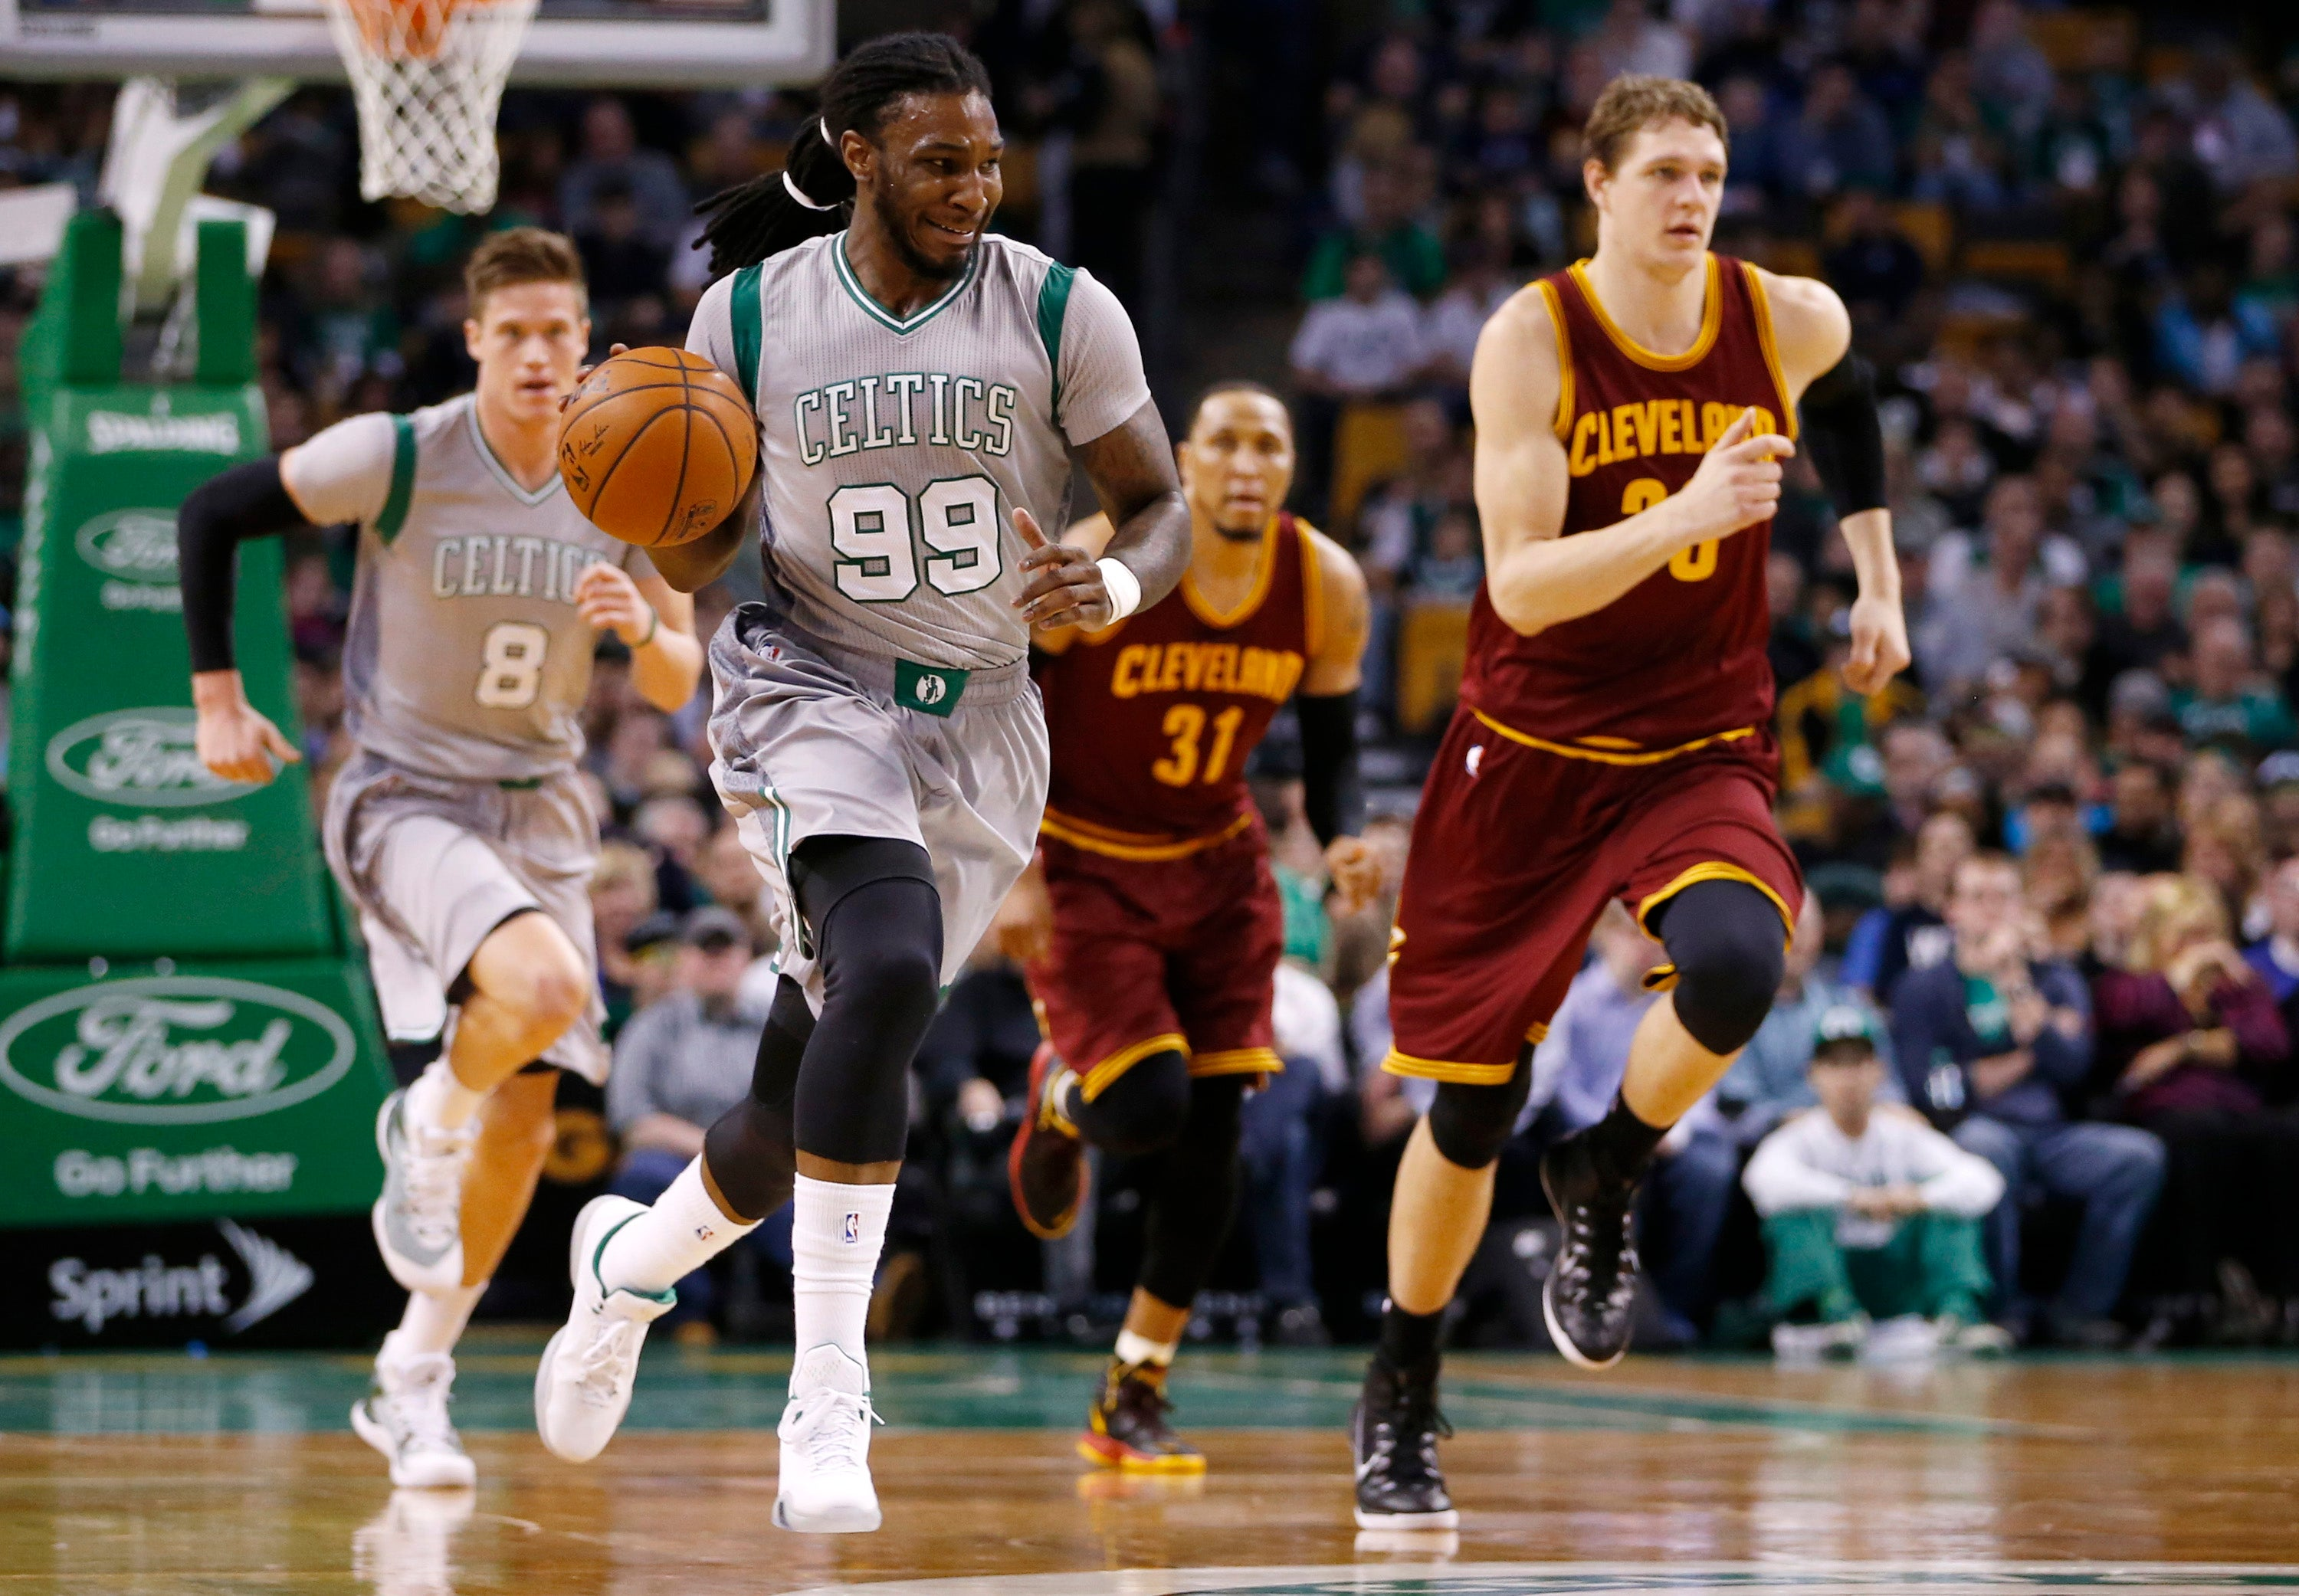 celtics on verge of making playoffs after routing cavs | boston